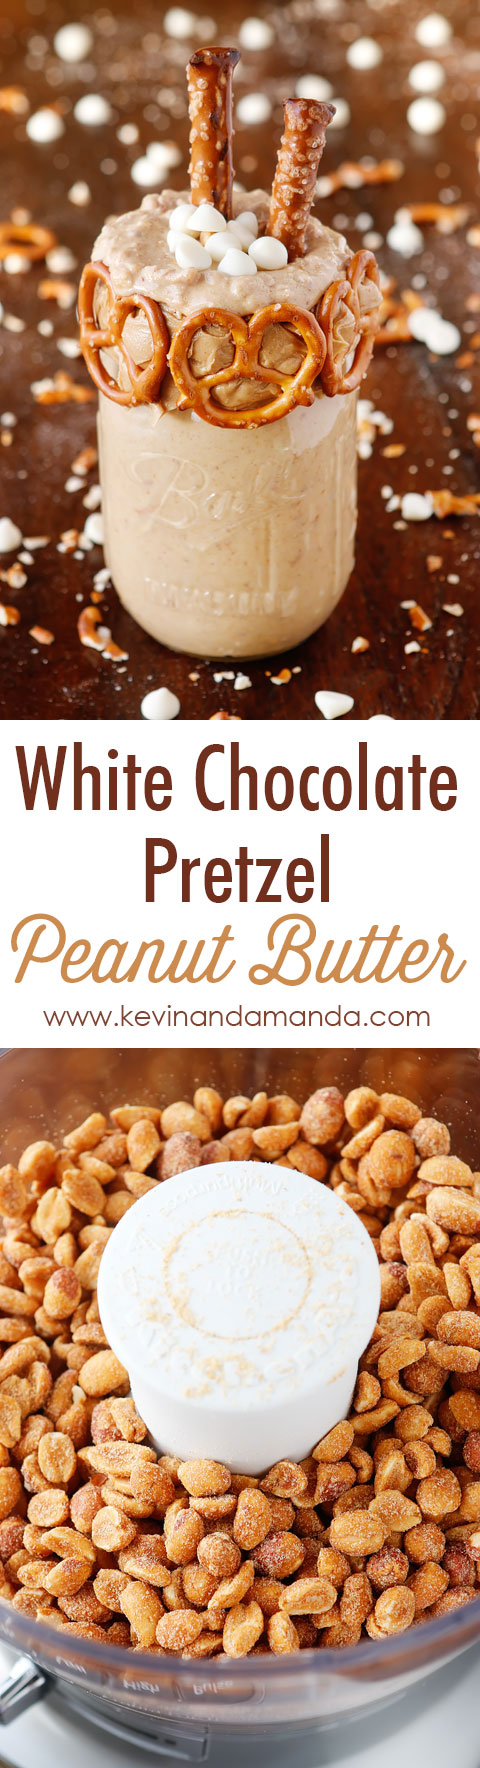 White Chocolate Pretzel Peanut Butter. This is literally the BEST thing I have EVER tasted!!!